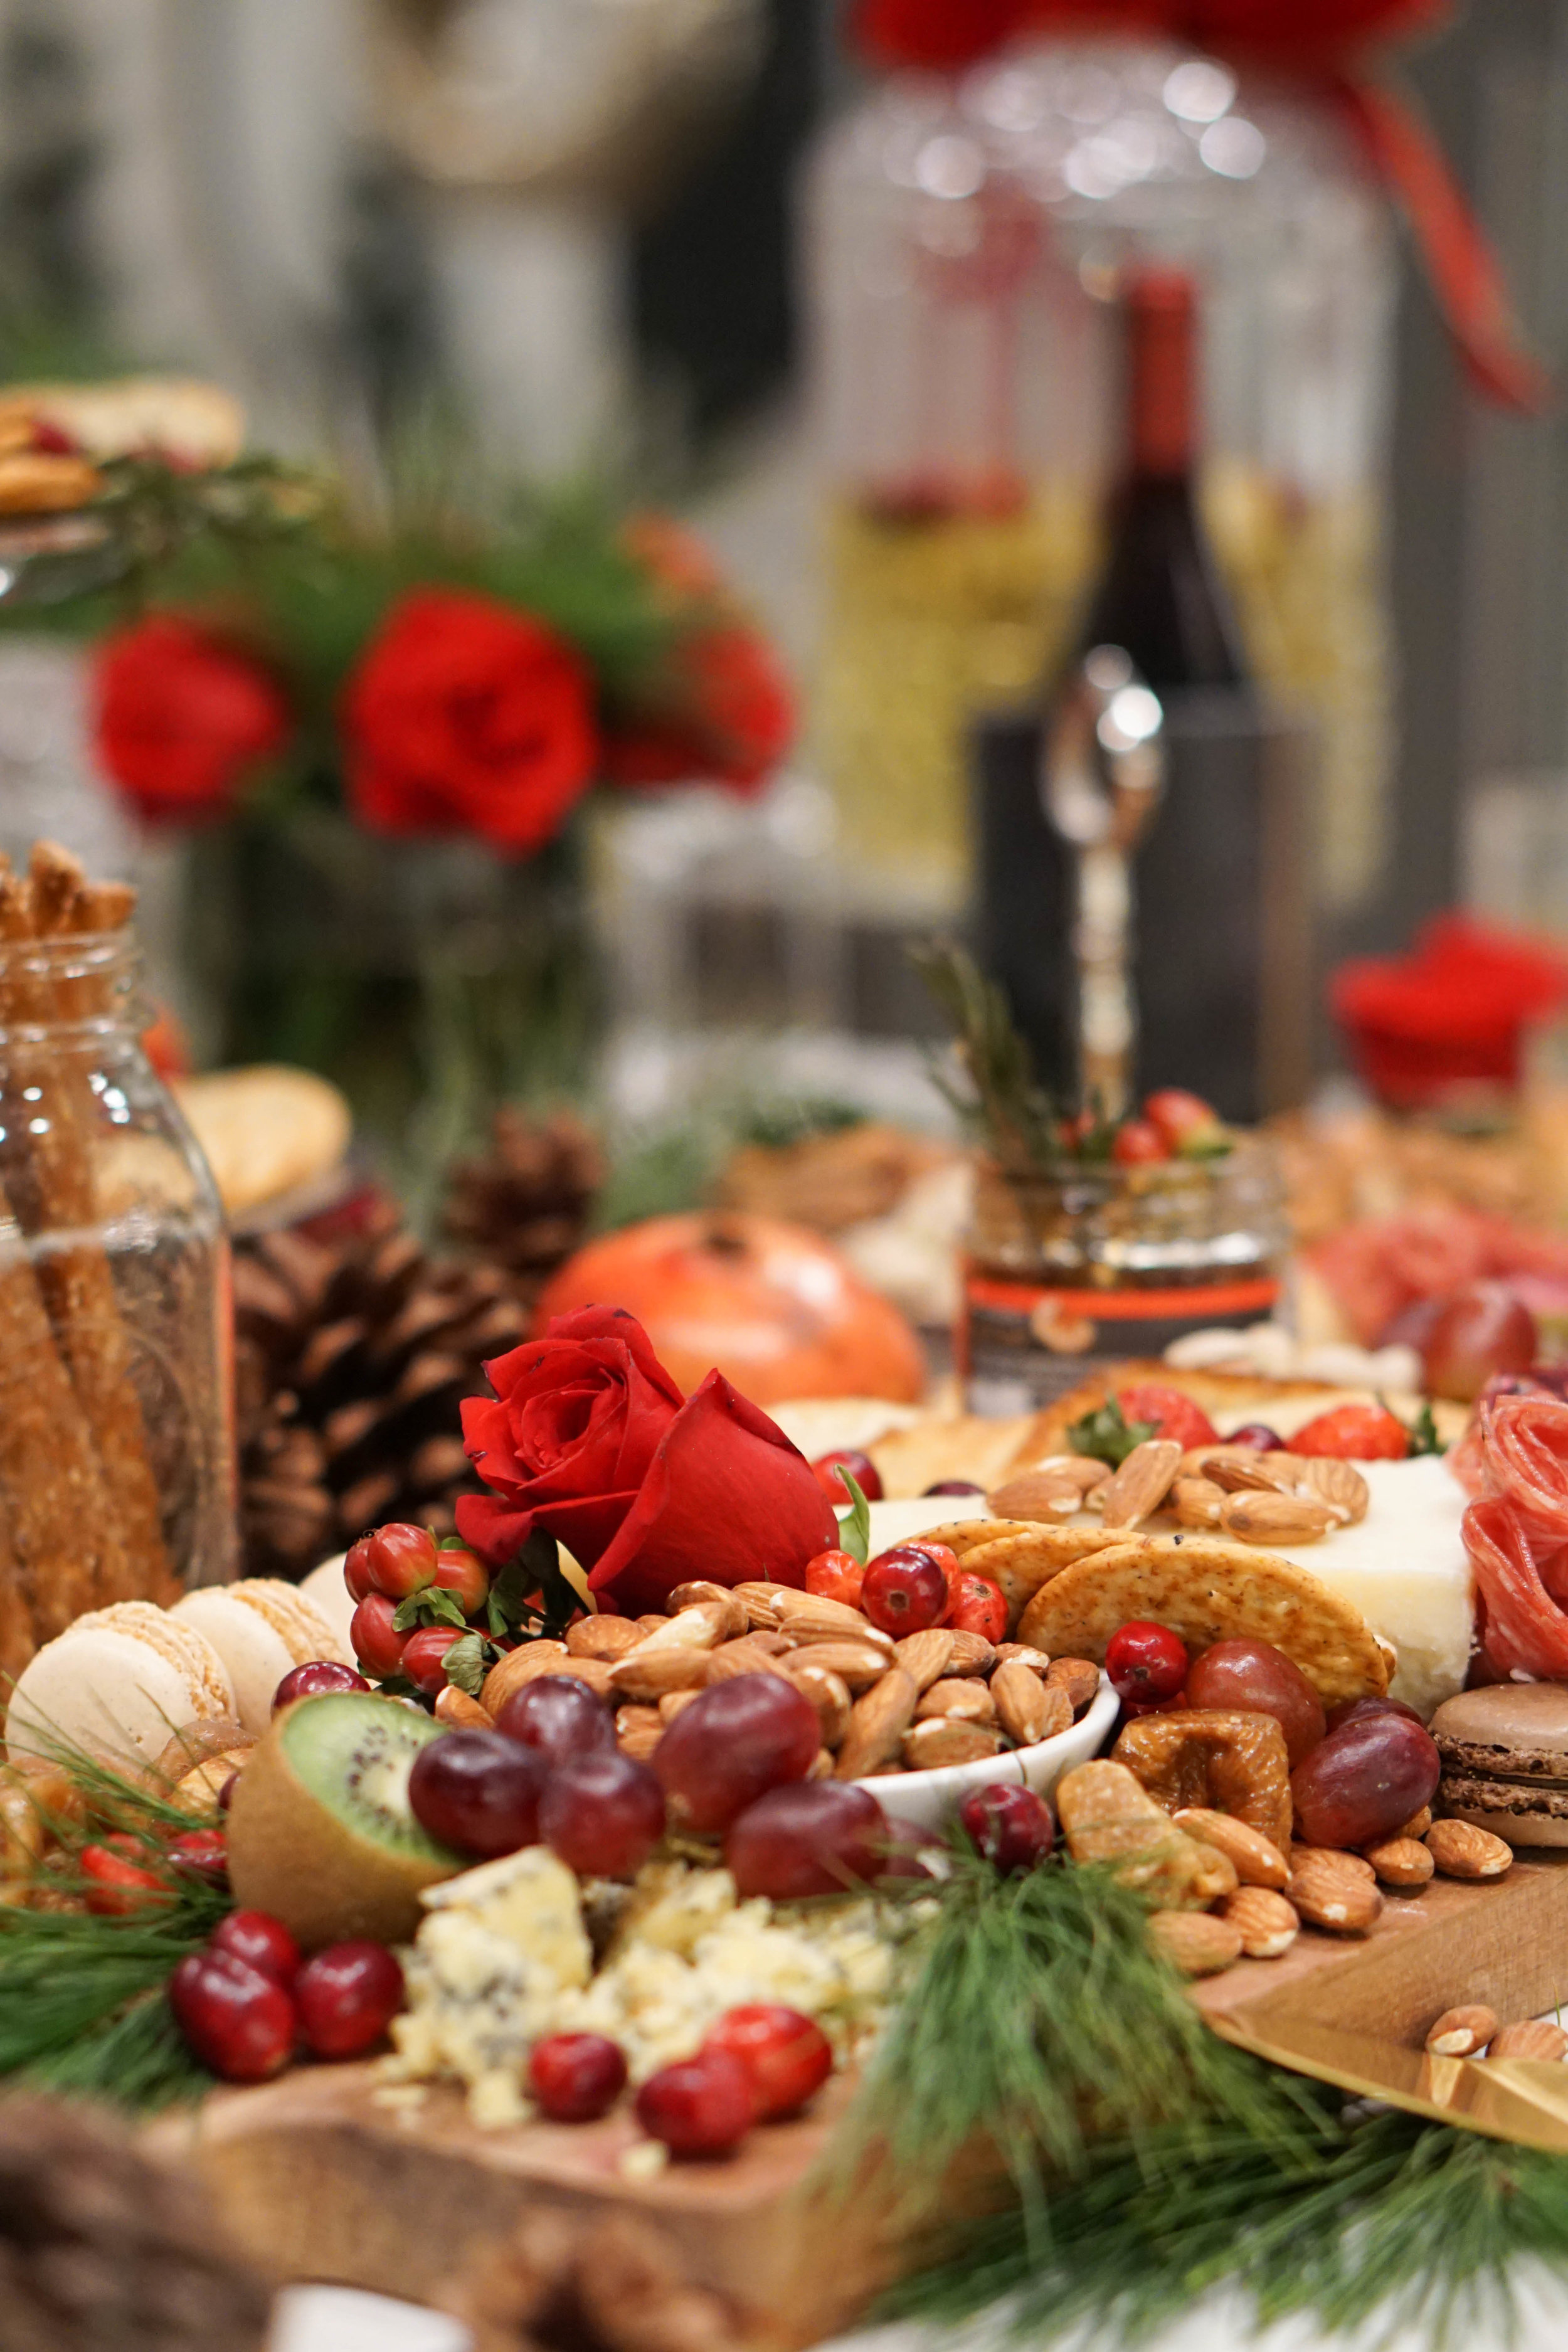 If you are thinking of hosting your own Holiday party next year, here are a few pointers:  -Get ready as much as you can before the day of the party. Laundry, house cleaning, and grocery shopping can all be done in advance to ensure that the day of is reserved for the finer details.  -Consider any special diets, if you have friends with food intolerances or restrictions be sure to have a small section just for them. Its a thoughtful consideration that makes the night feel personal to those guests.  -Add layers. For my set up I layered in greenery, florals, cranberries, and pinecones. These touches create a visual cohesiveness throughout the spread.  -Save plenty of time to get yourself ready. If you allow a few hours to relax and get dressed before the start of the party, you will be collected and prepared to greet guests as they arrive.  -You've worked hard to bring everything together. Take time to enjoy the night and each guest.